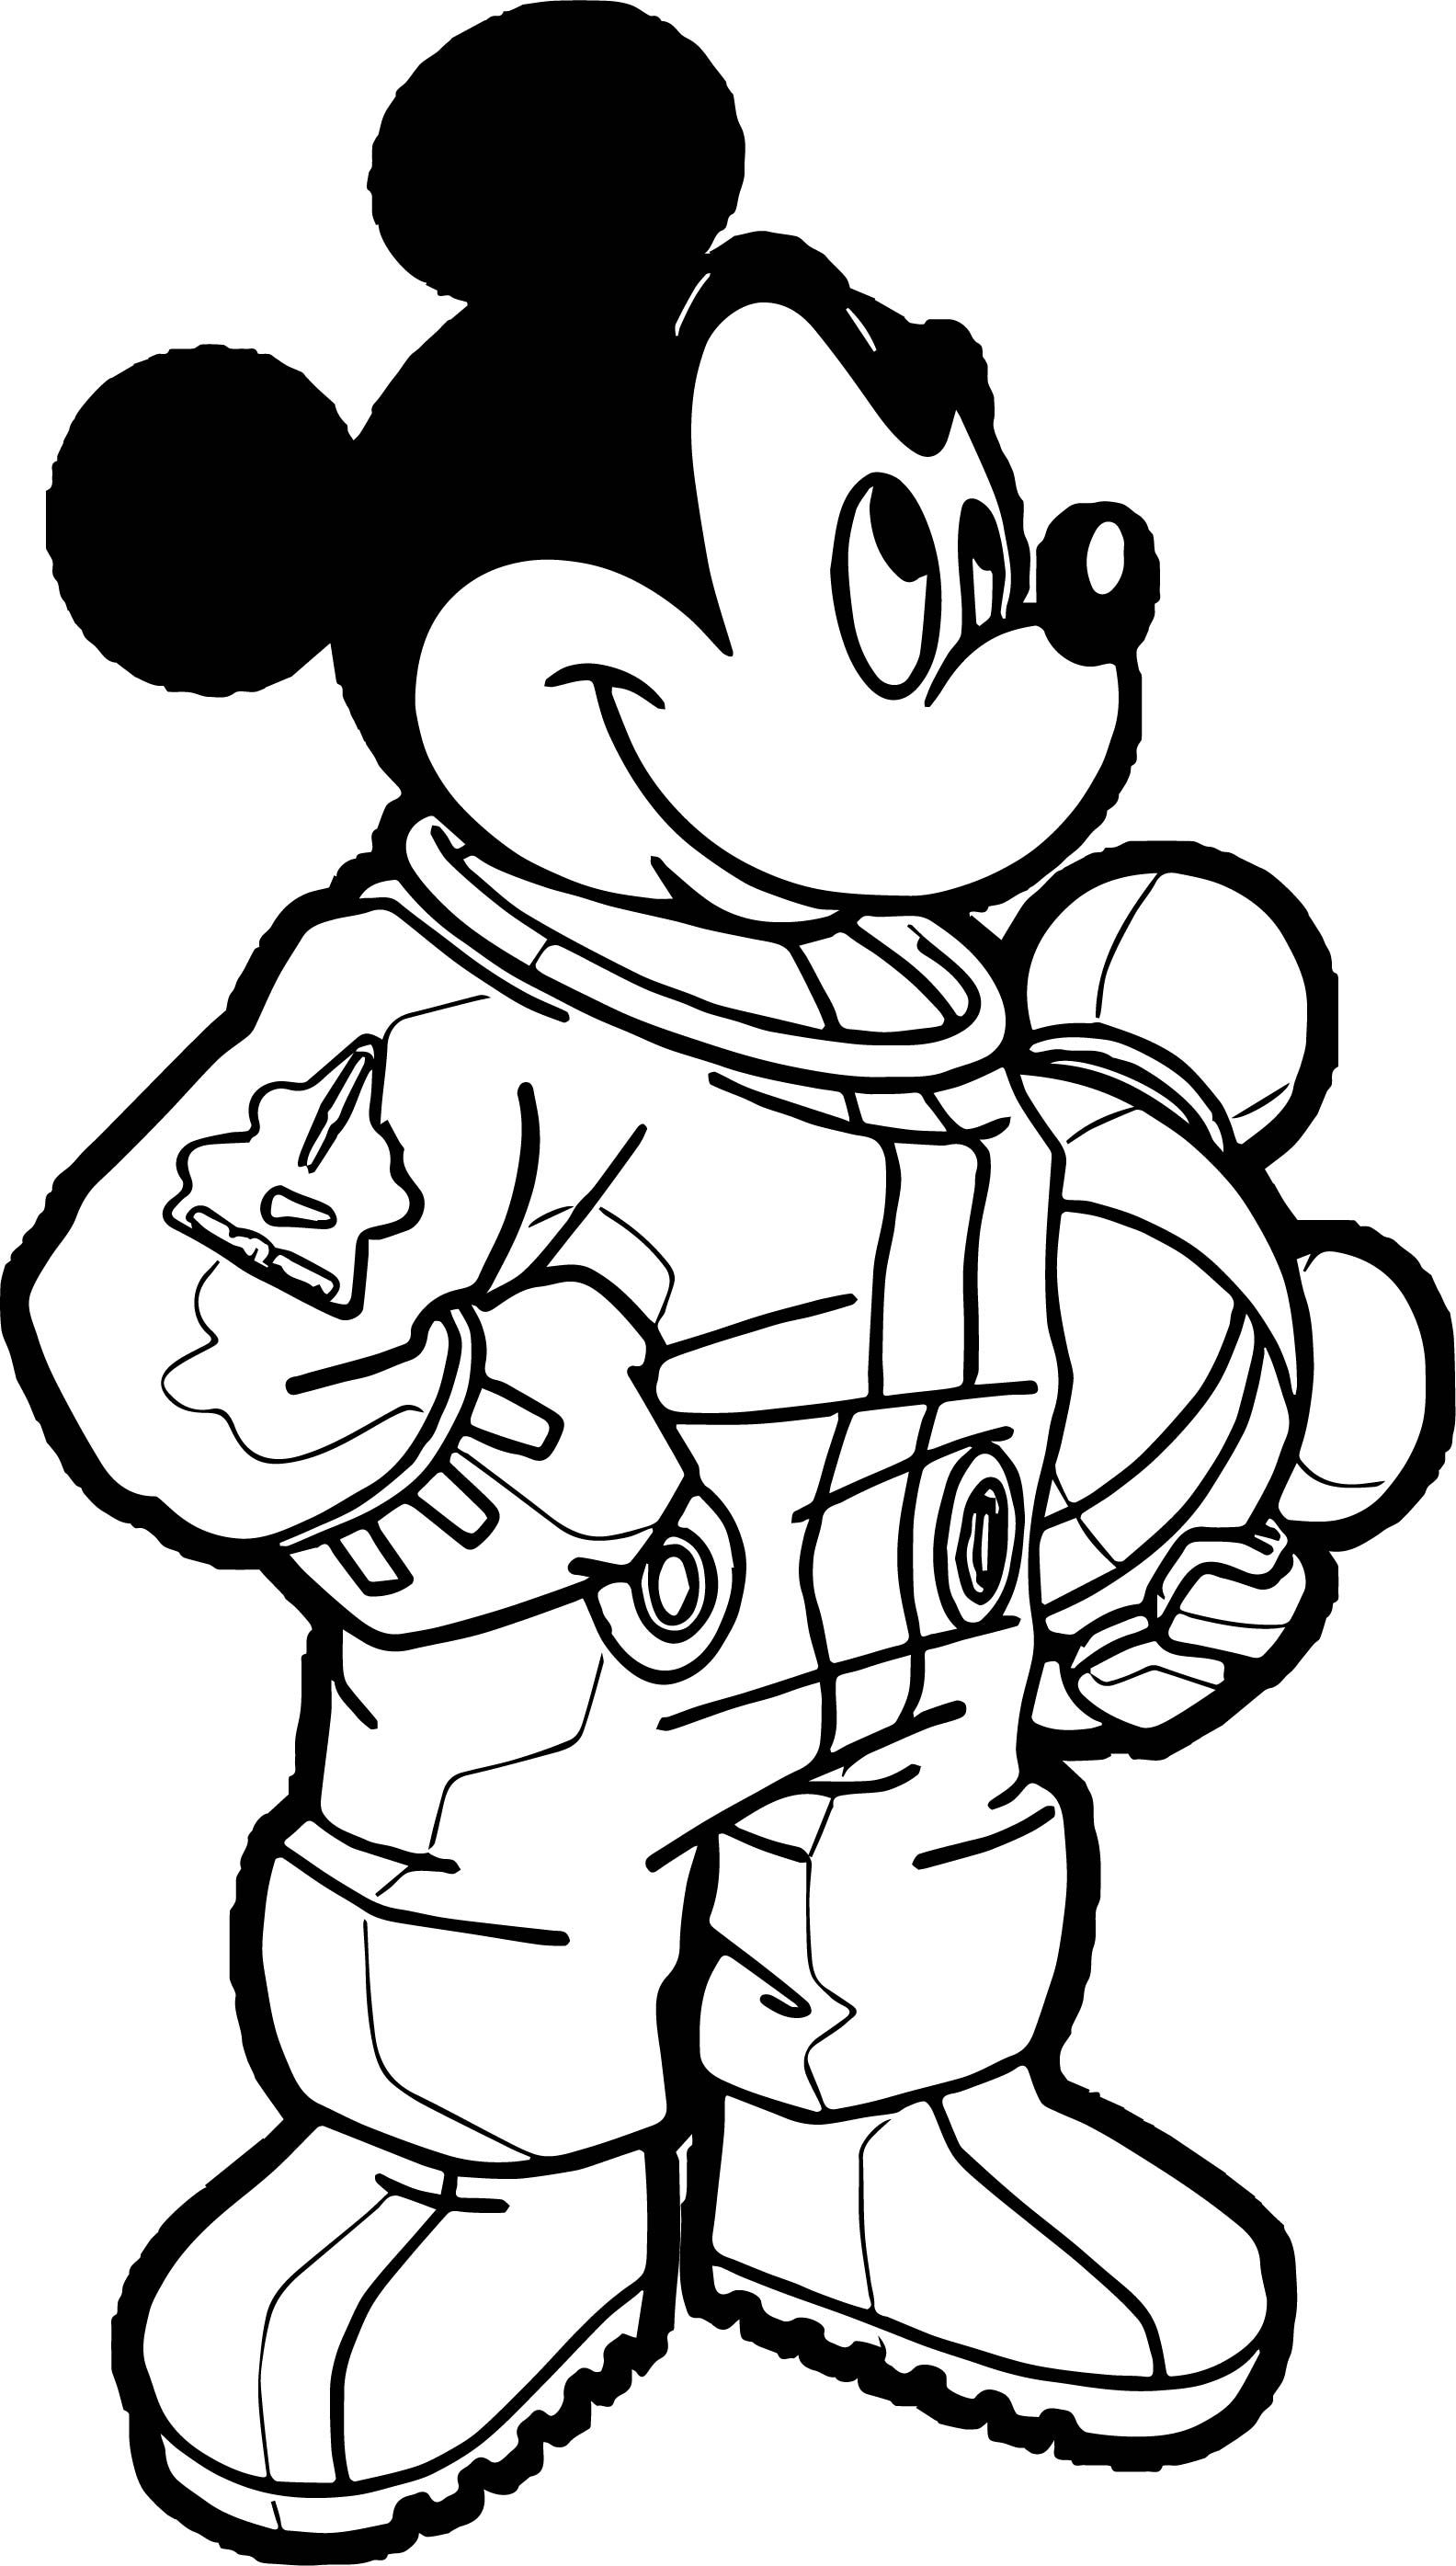 Awesome Astronaut Mickey Mouse Coloring Page